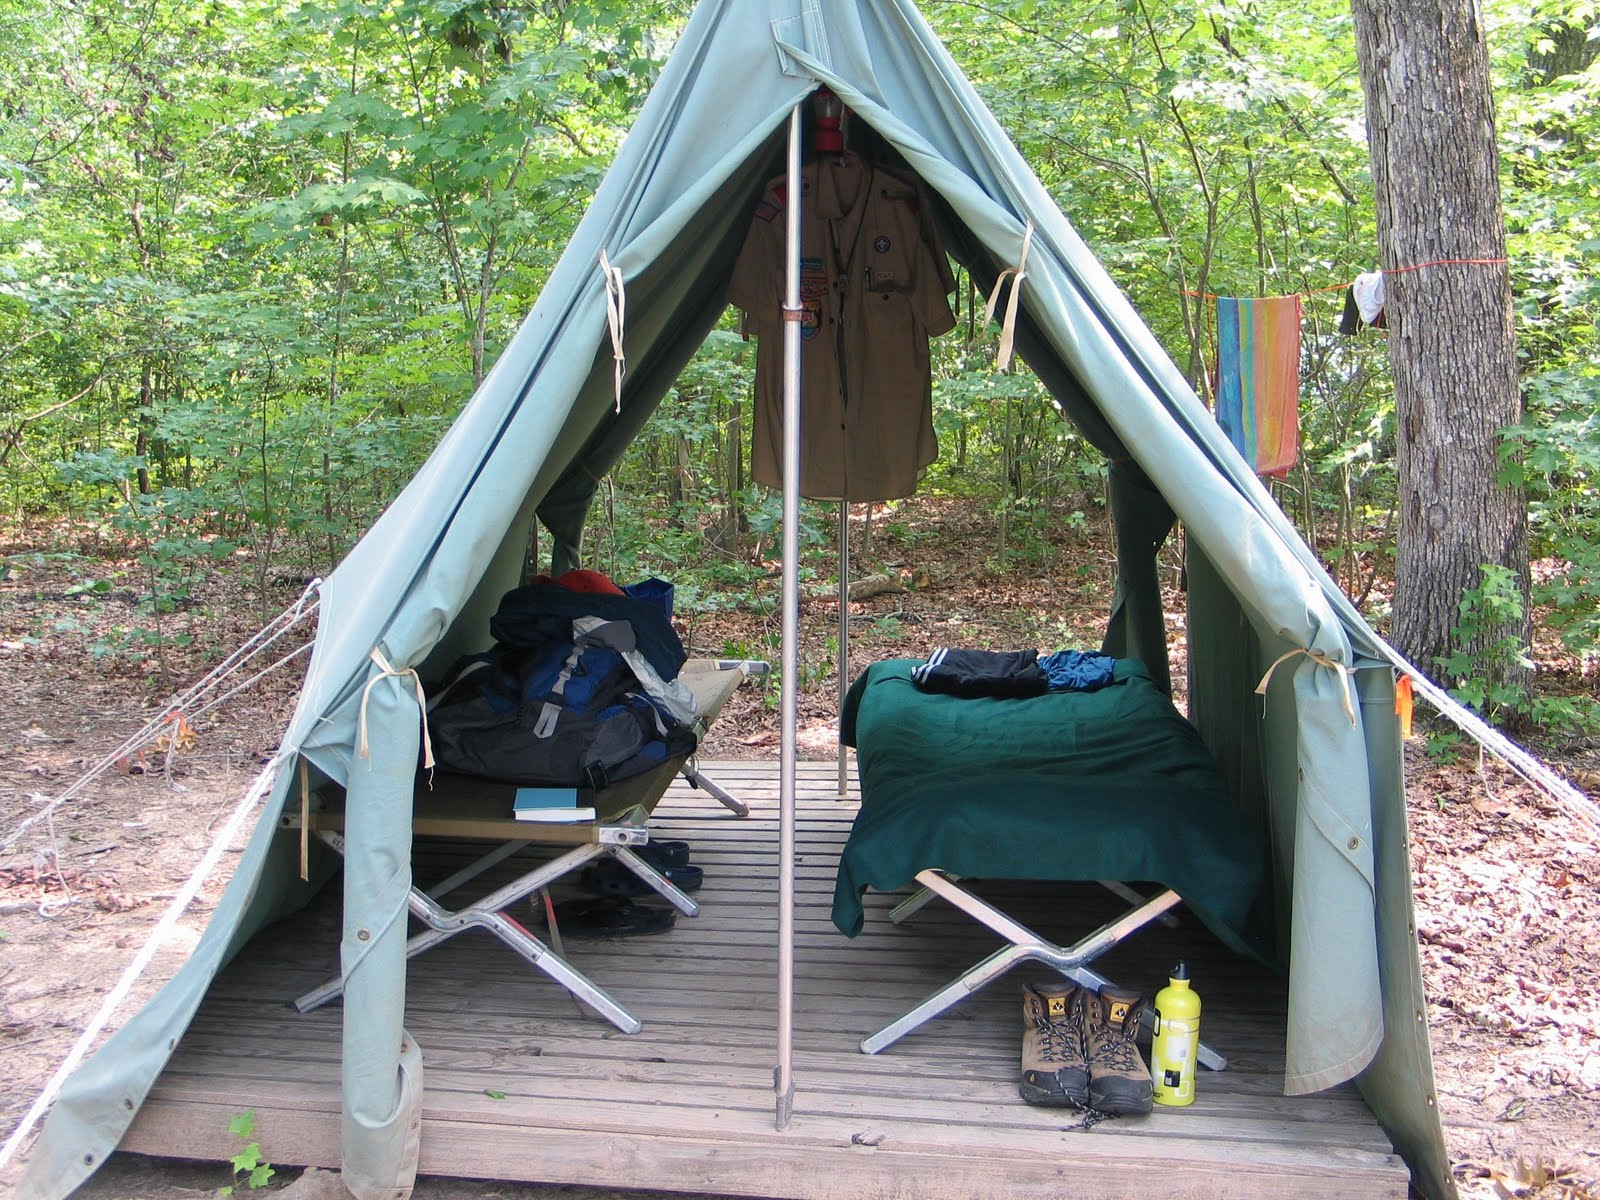 Standard c& canvas tent on wooden platform & Troop 451 at Camp Durant 2011: In the Groove